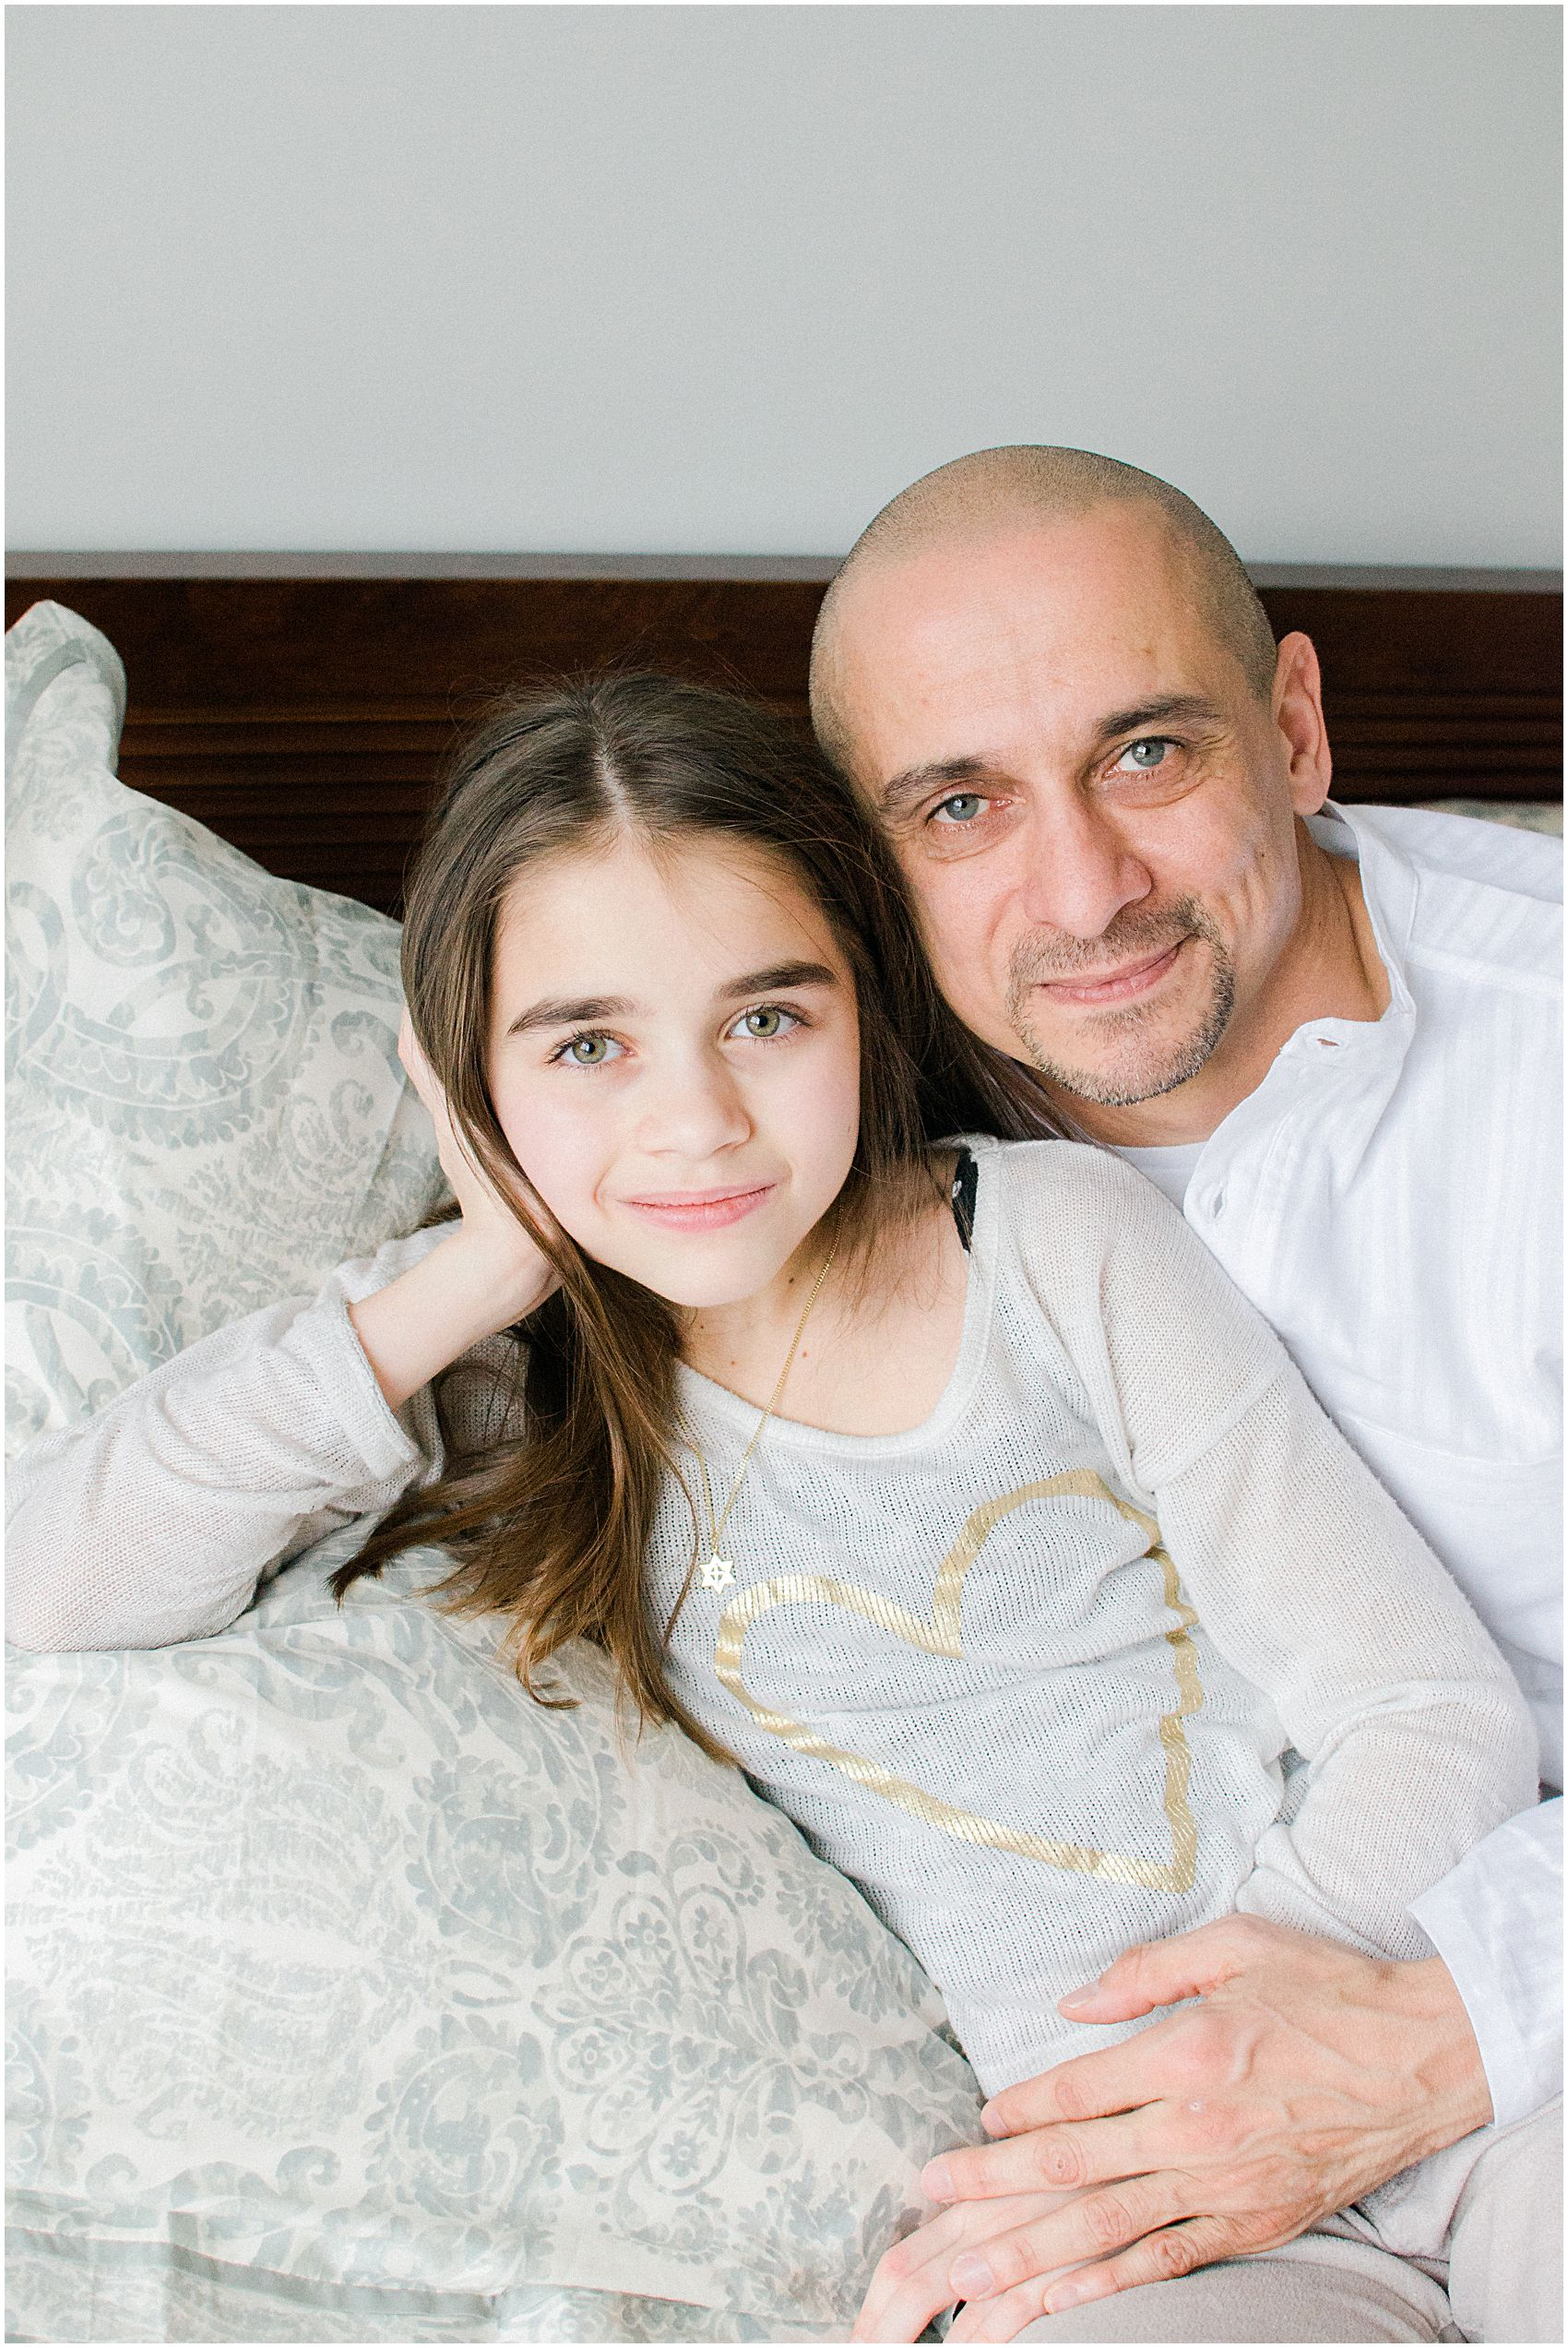 family-lifestyle-photography-hoboken-nj-in-hudson-county-86